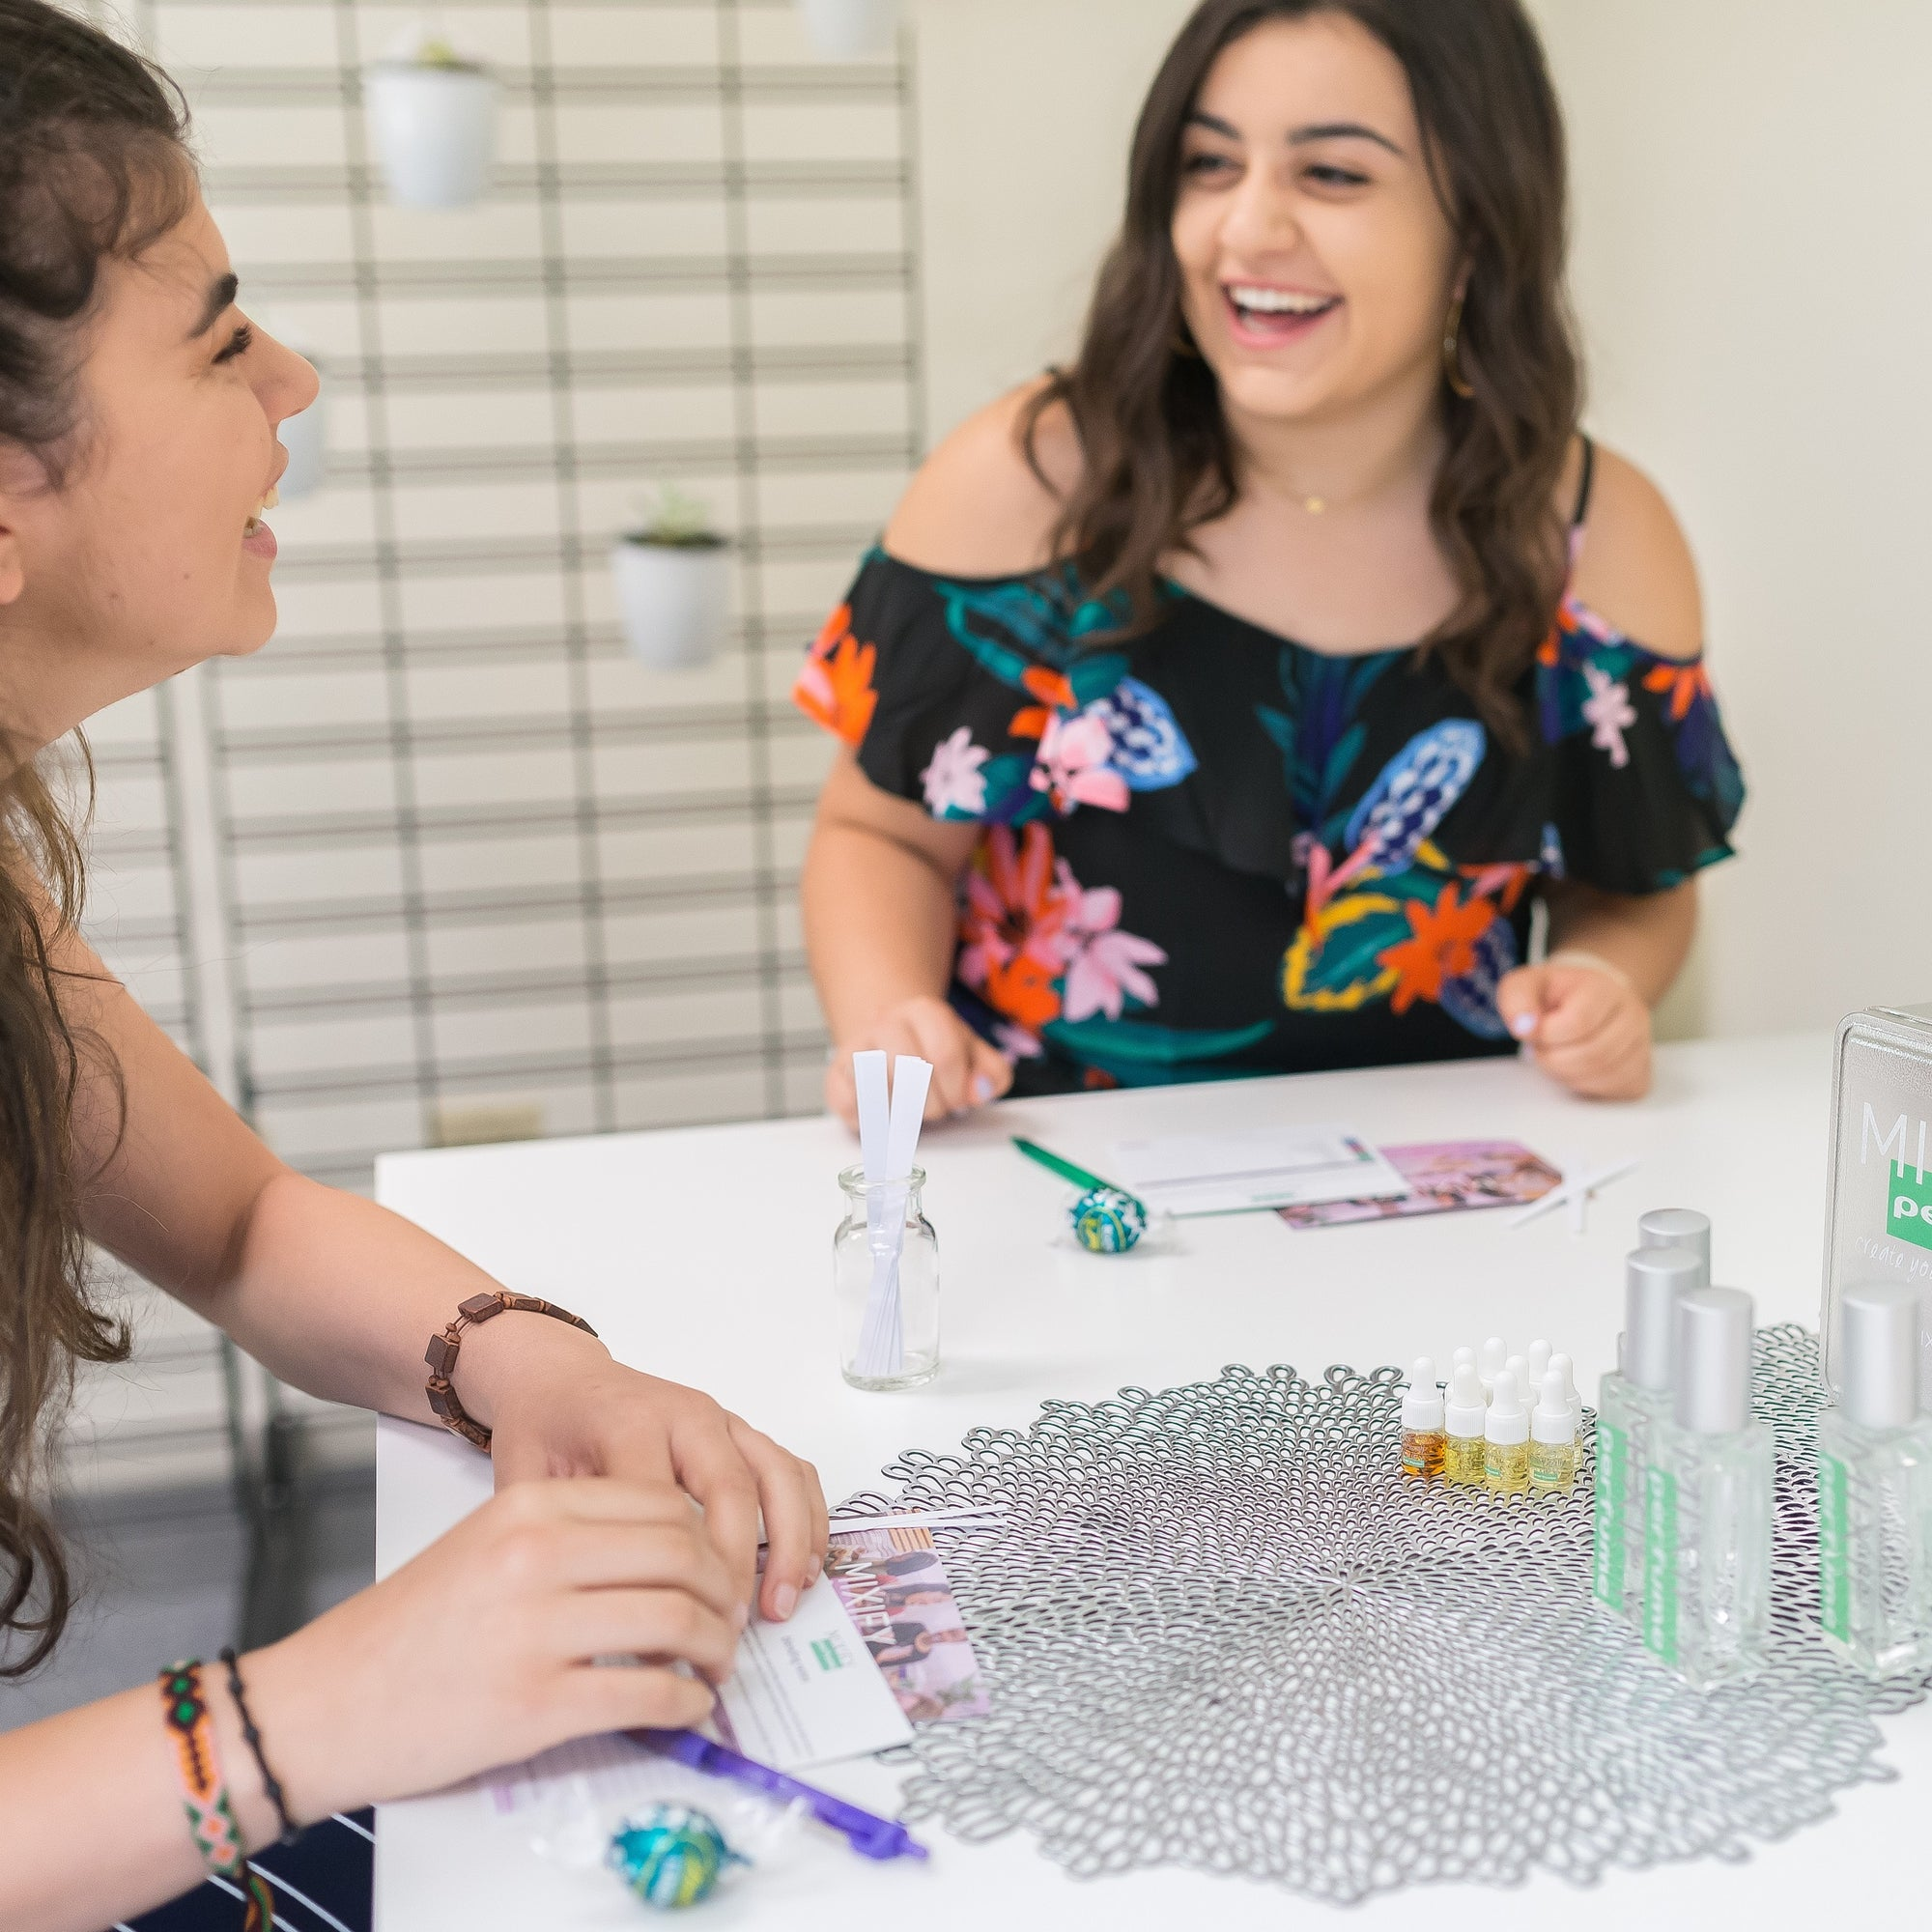 Girls laughing around table making Mixify Beauty perfume